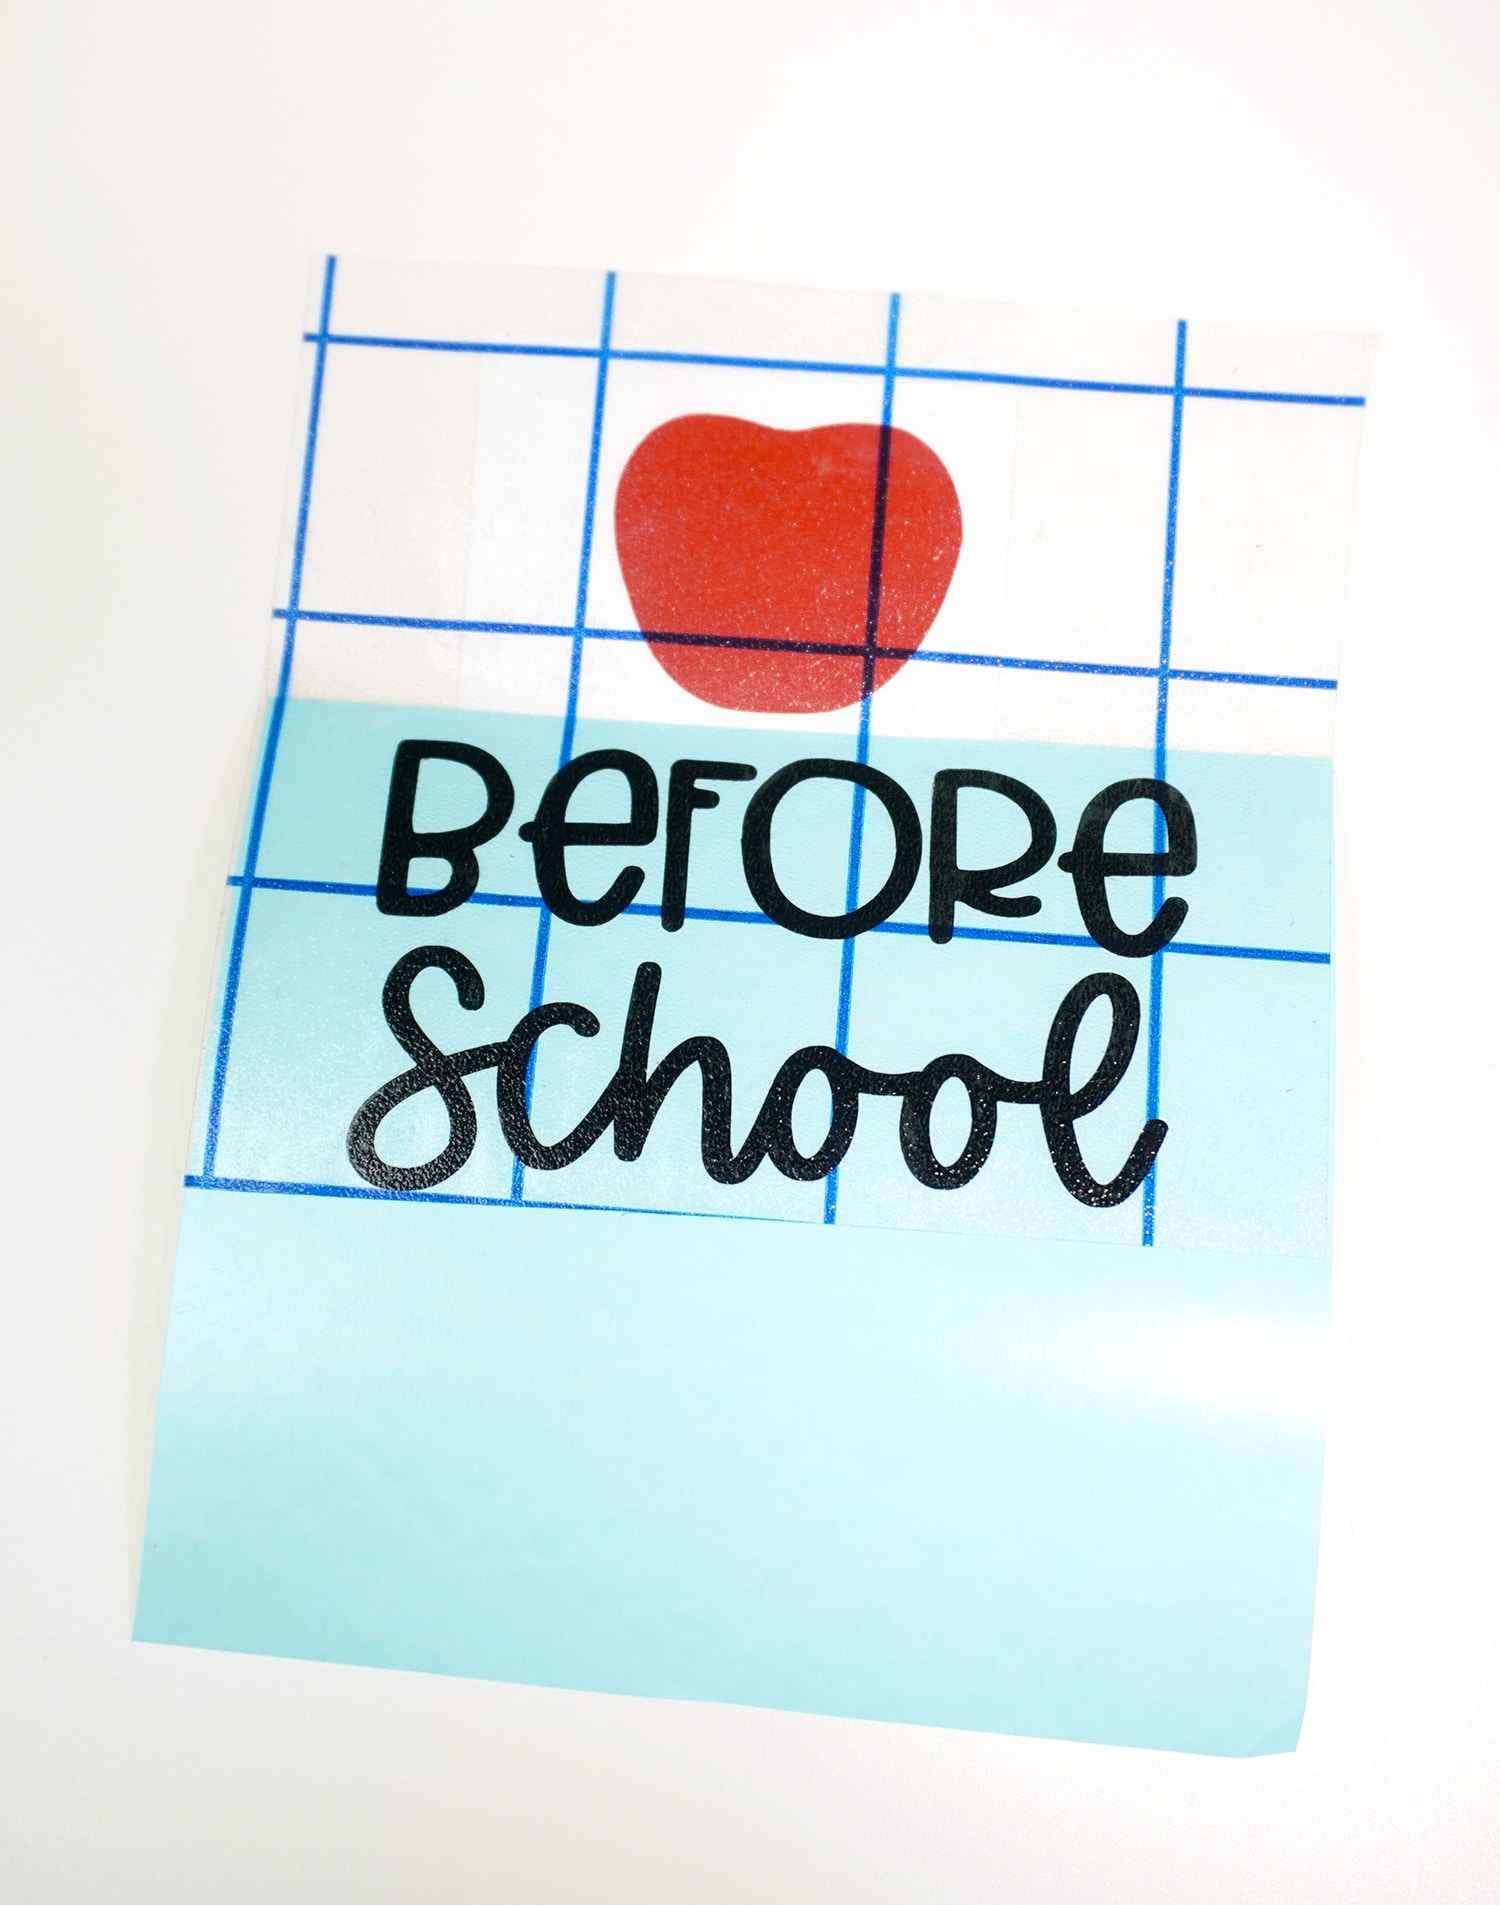 Apple and before school vinyl designs on white background